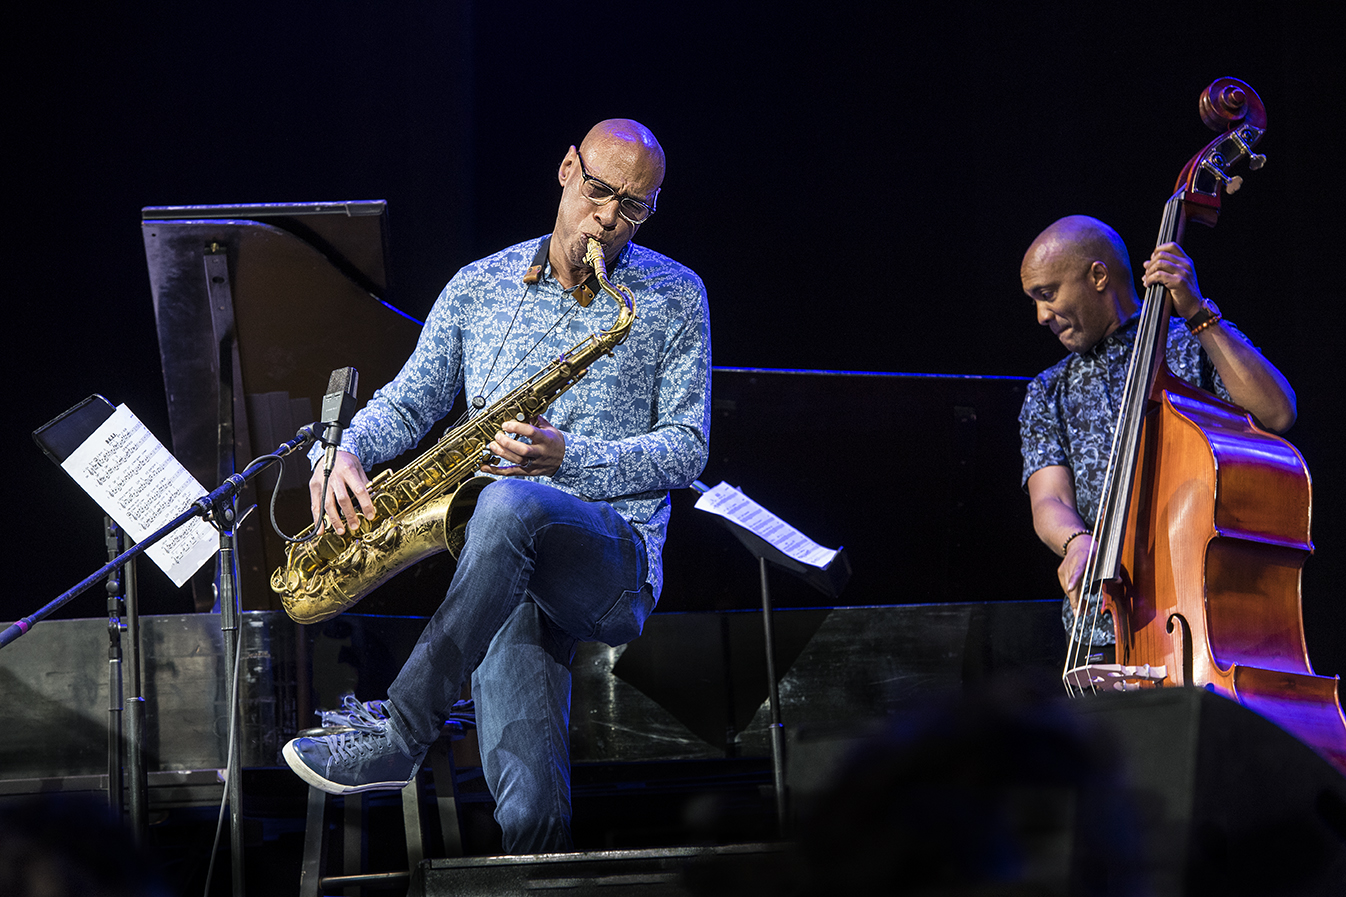 Joshua Redman at the 2019 Saratoga Jazz Festival